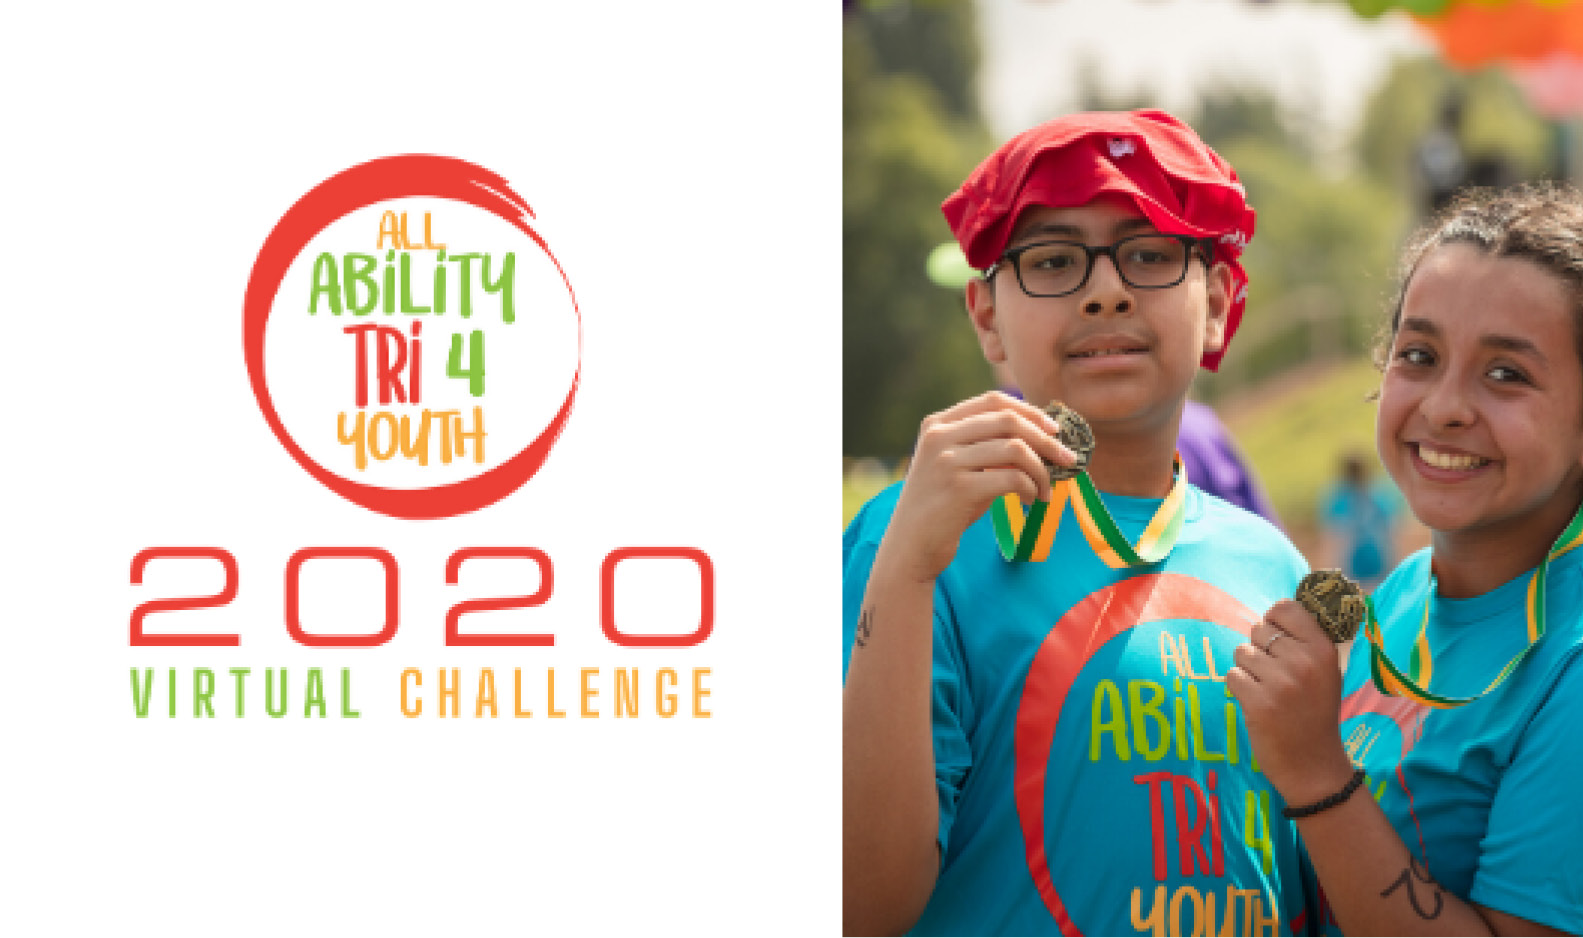 All Ability Tri4Youth - 2020 Virtual Challenge